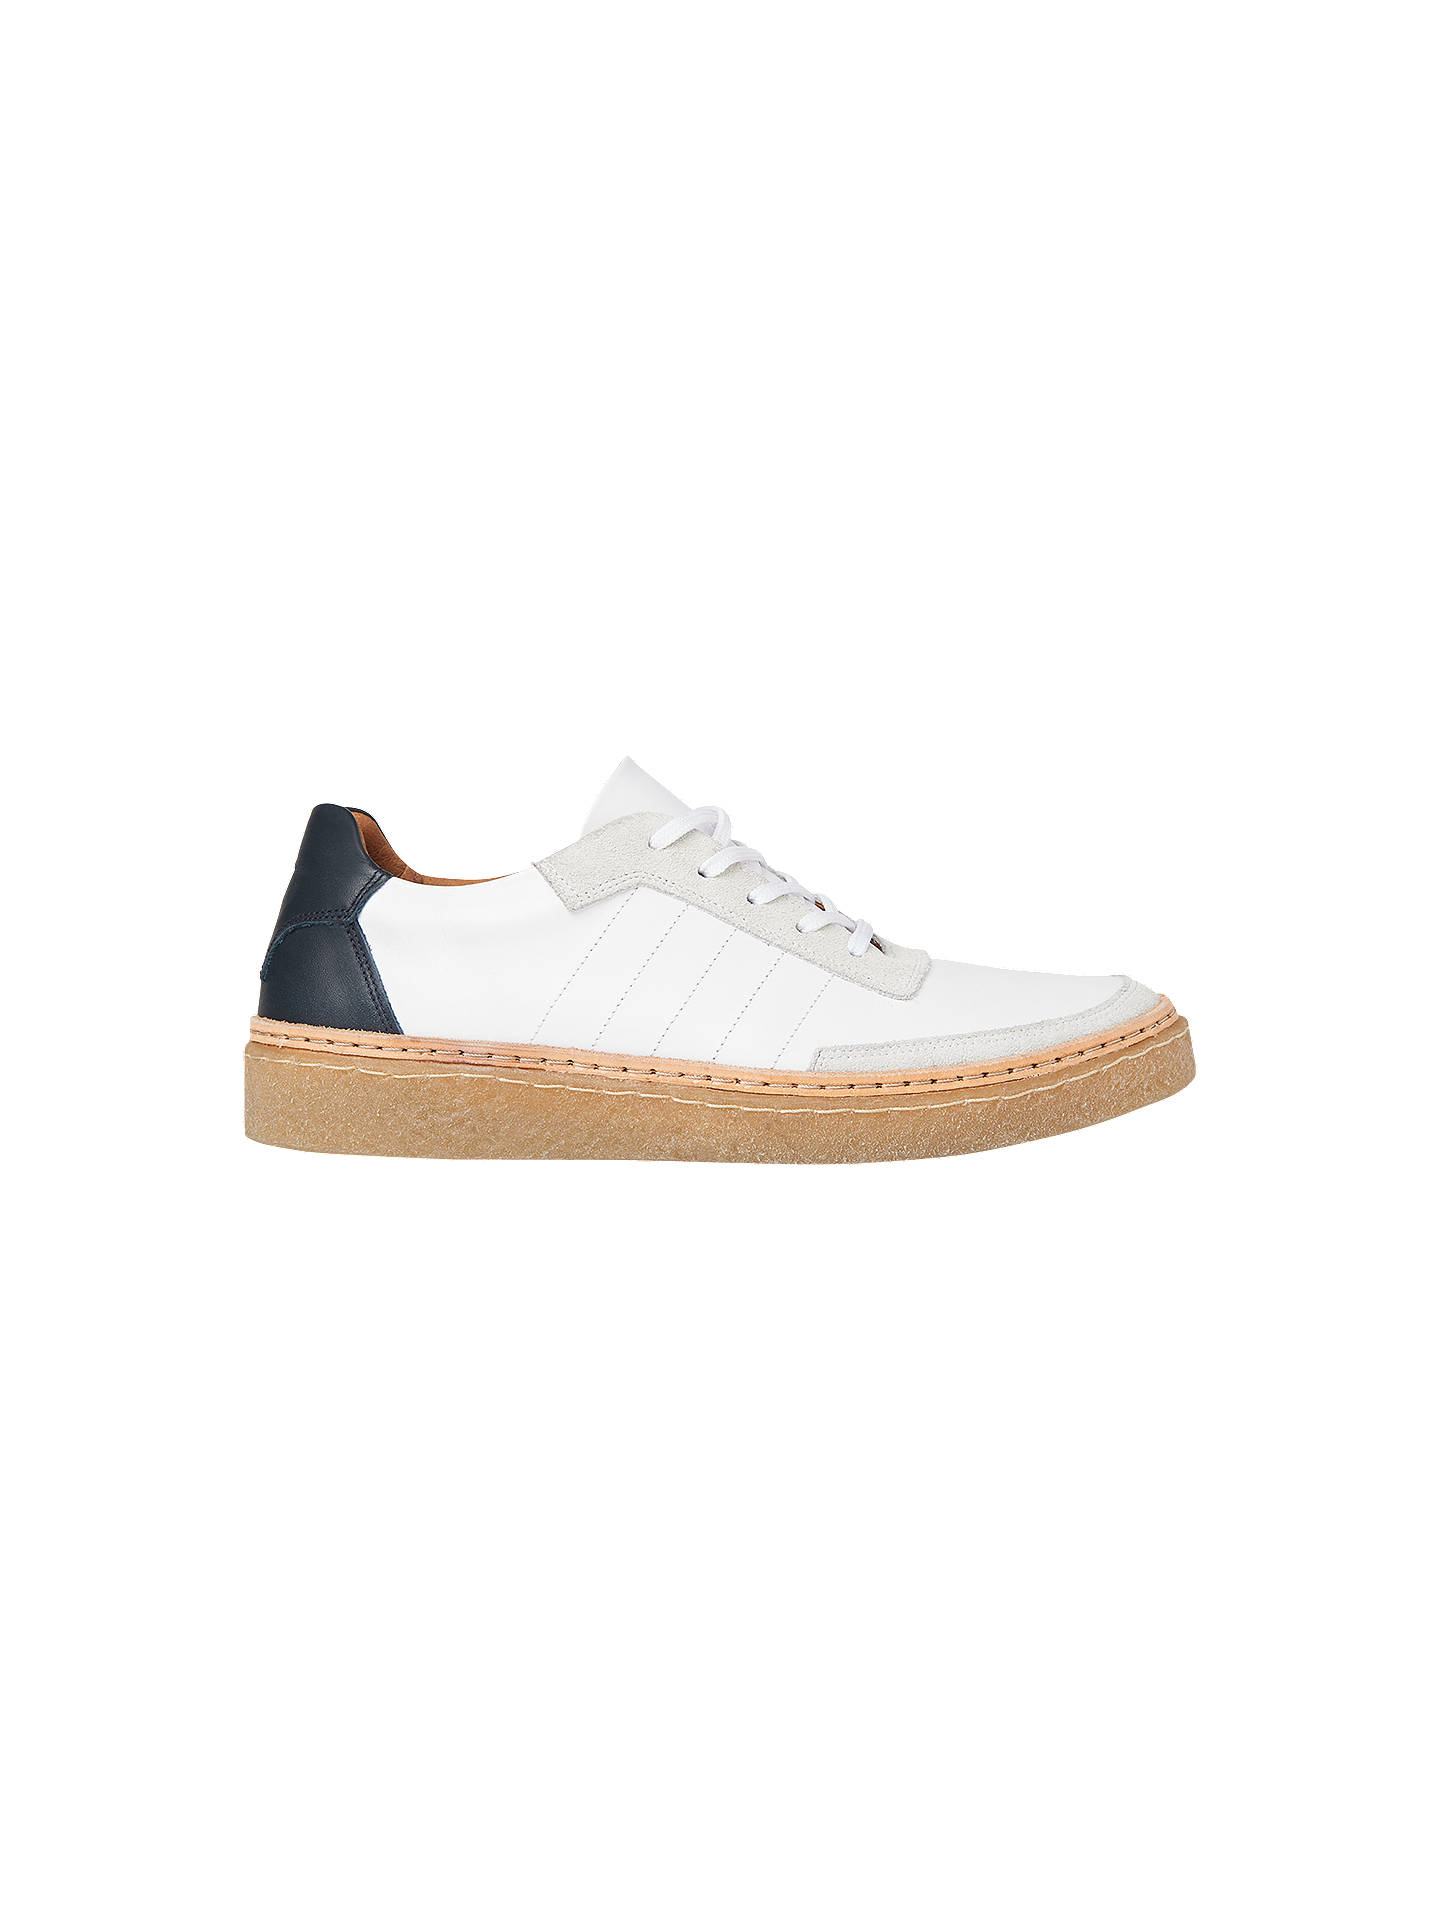 f96909a741cff7 Buy Whistles Crepe Sole Trainers